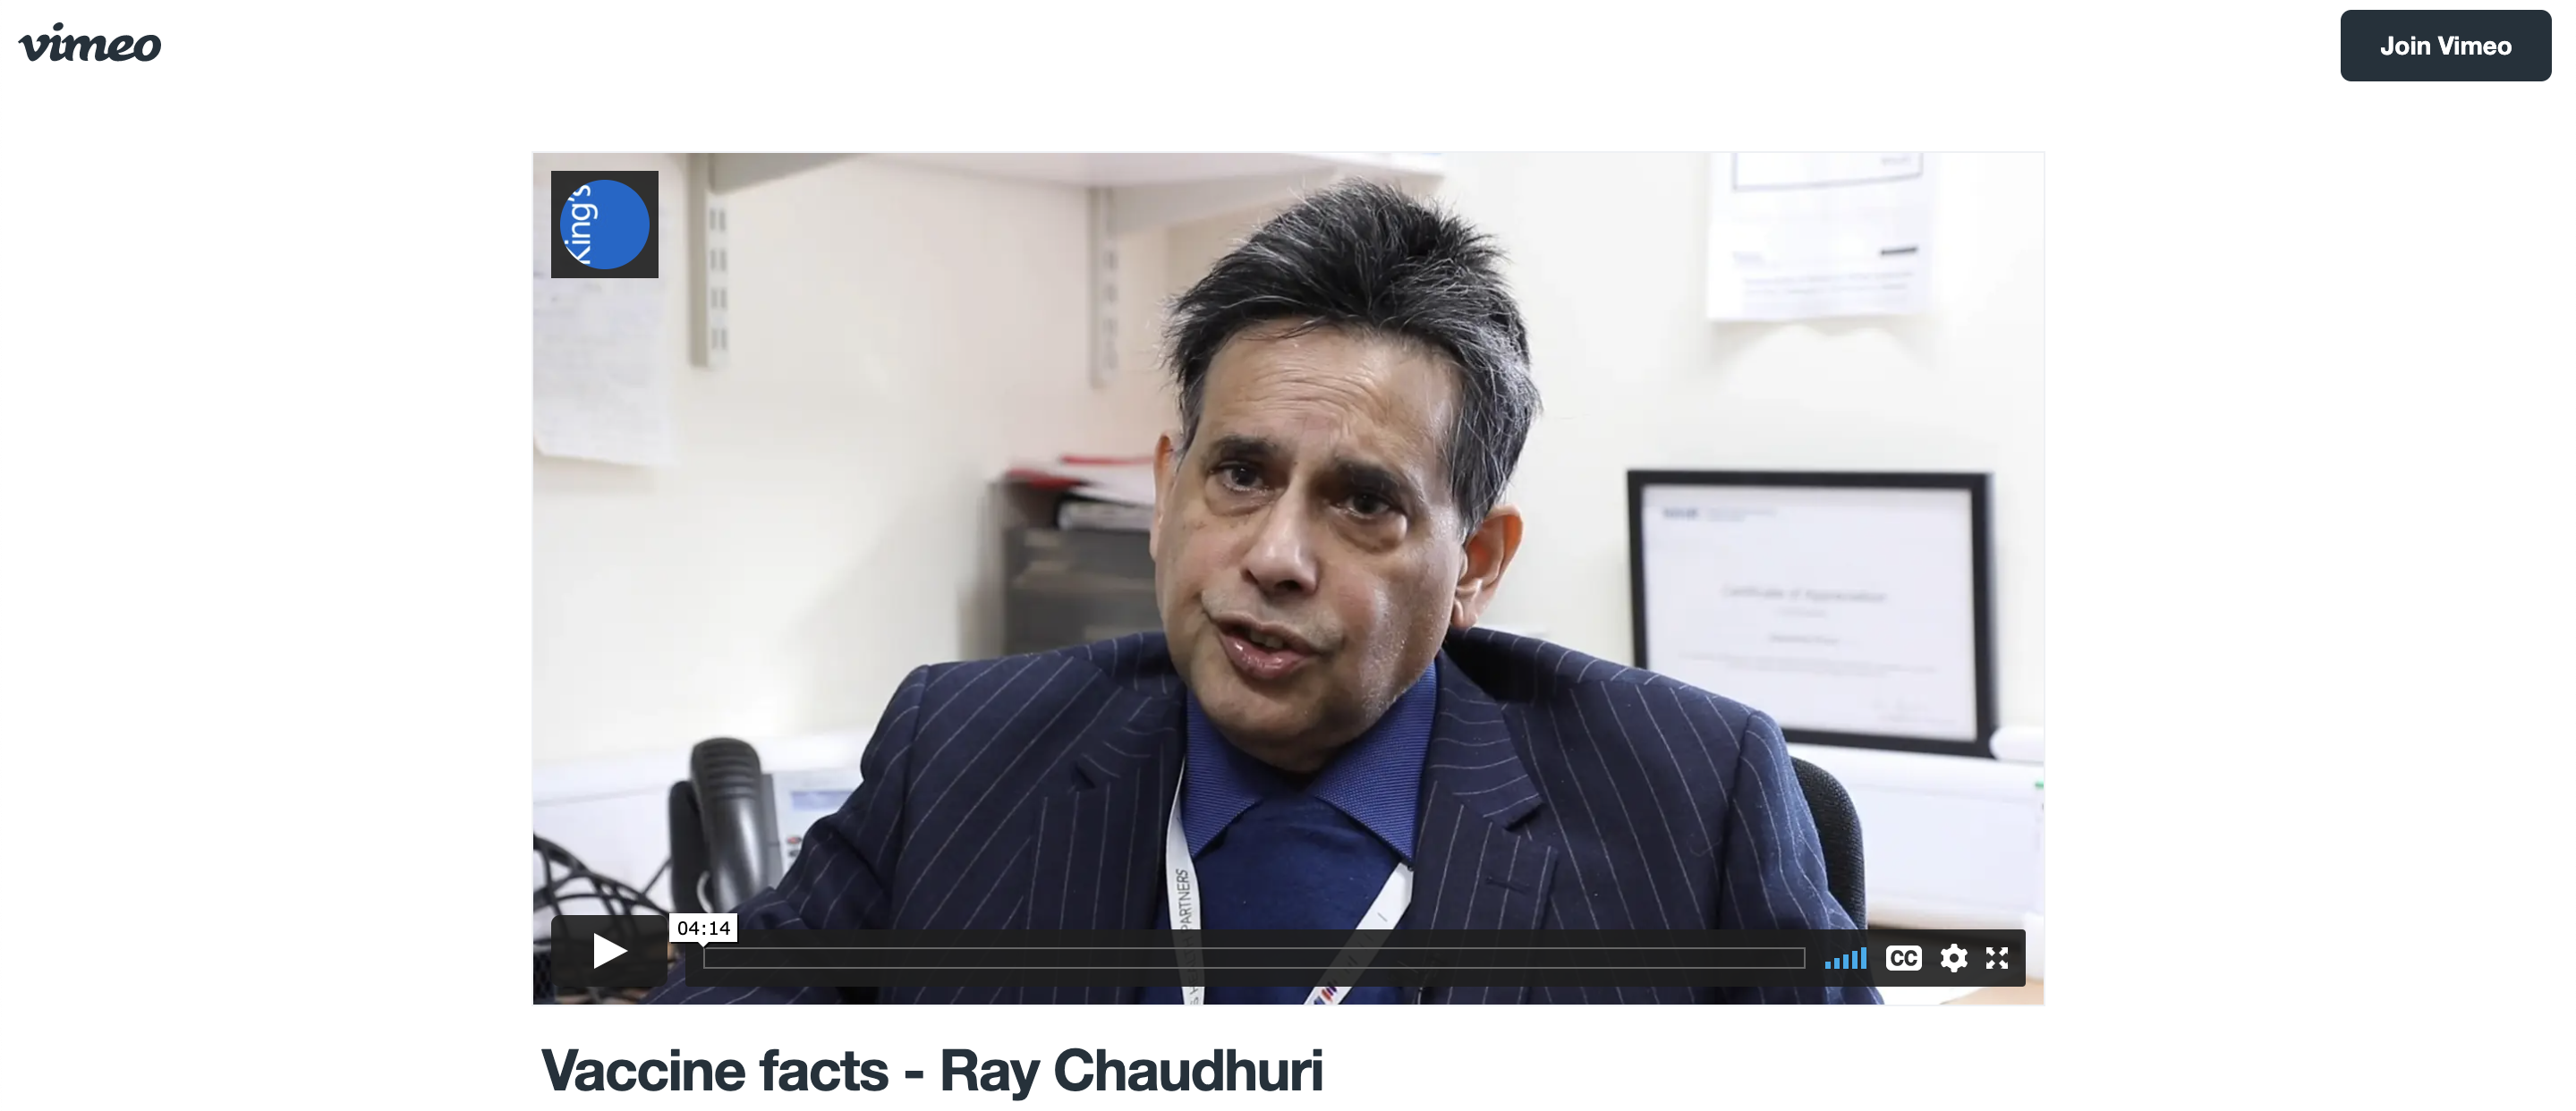 Prof K Ray Chaudhuri discusses COVID-19 vaccines on Vimeo